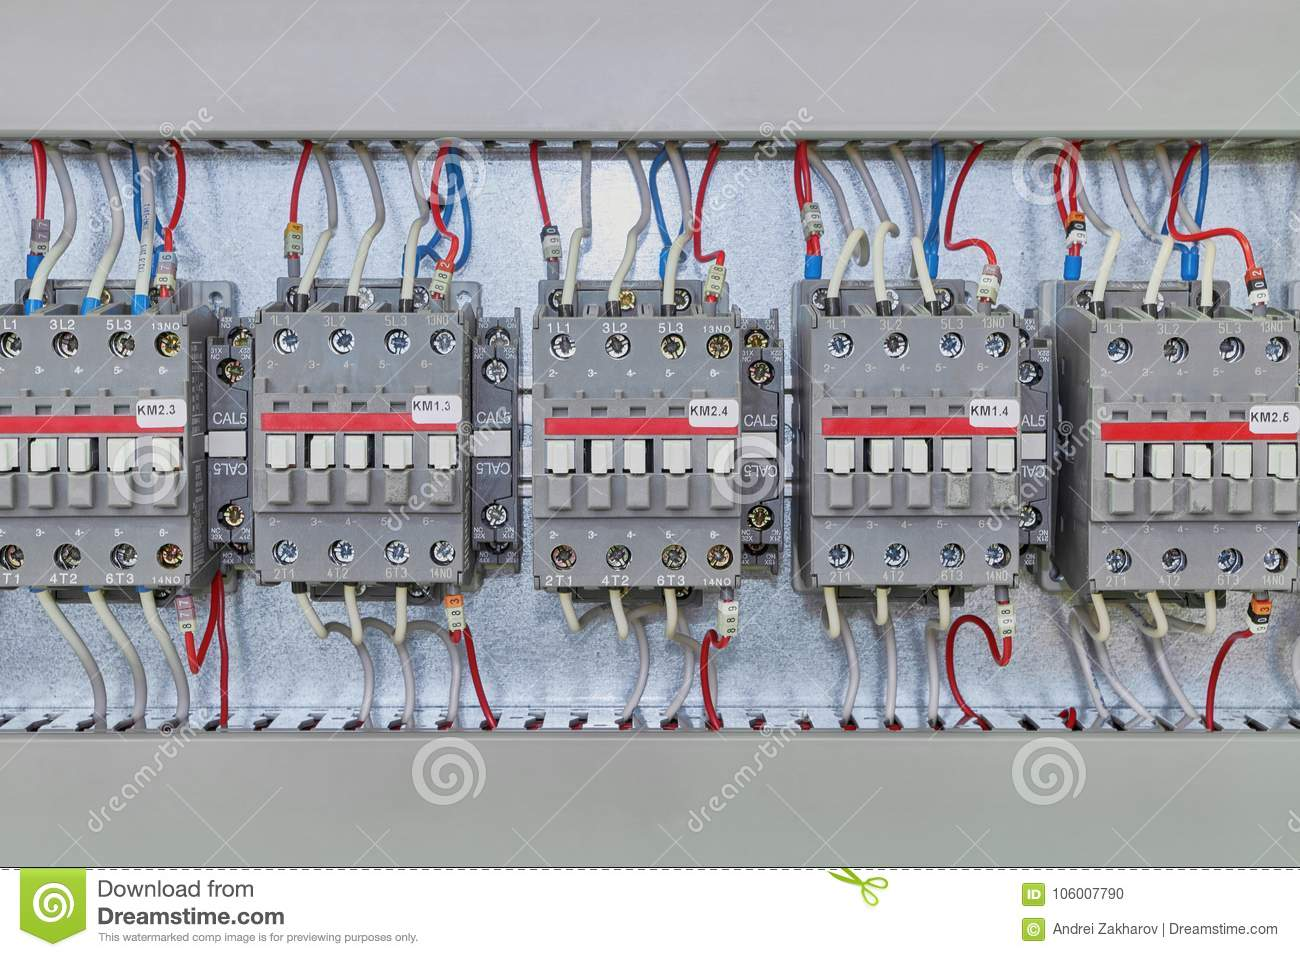 Several Electrical Contactor On A Mounting Panel In Electrical Closet.